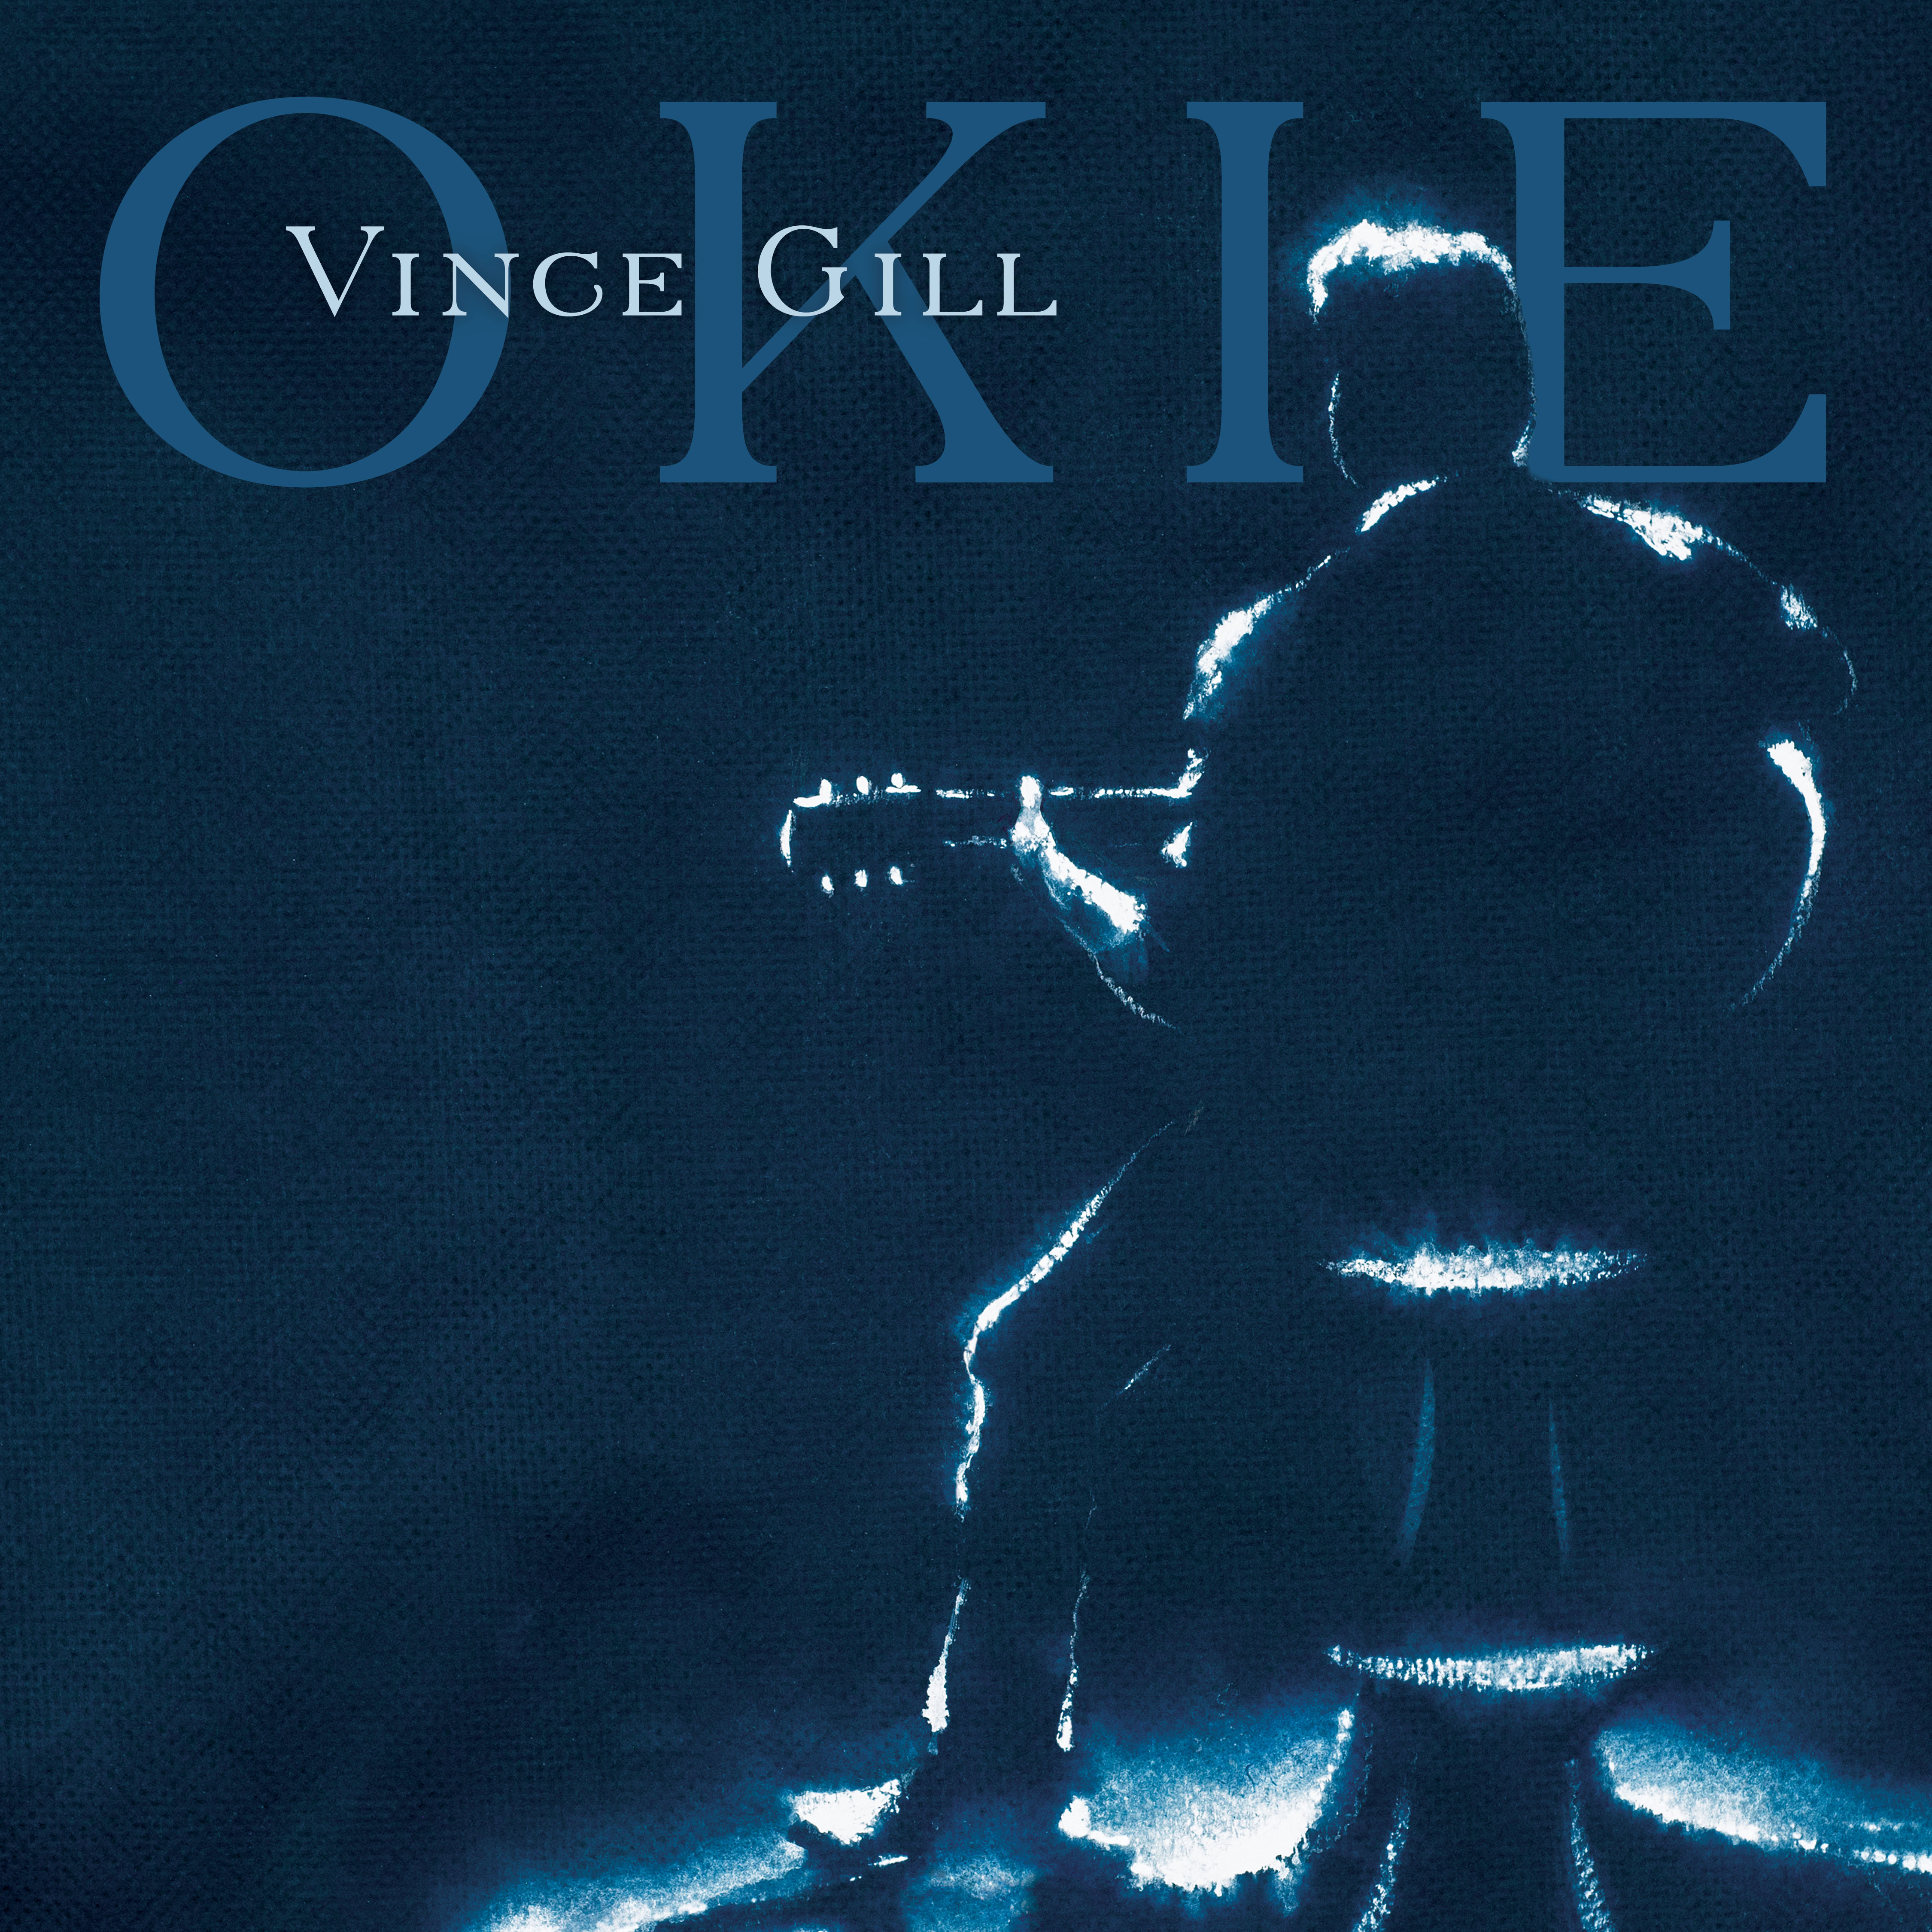 Vince-Gill-Cover-courtesy-of-MCM-Music